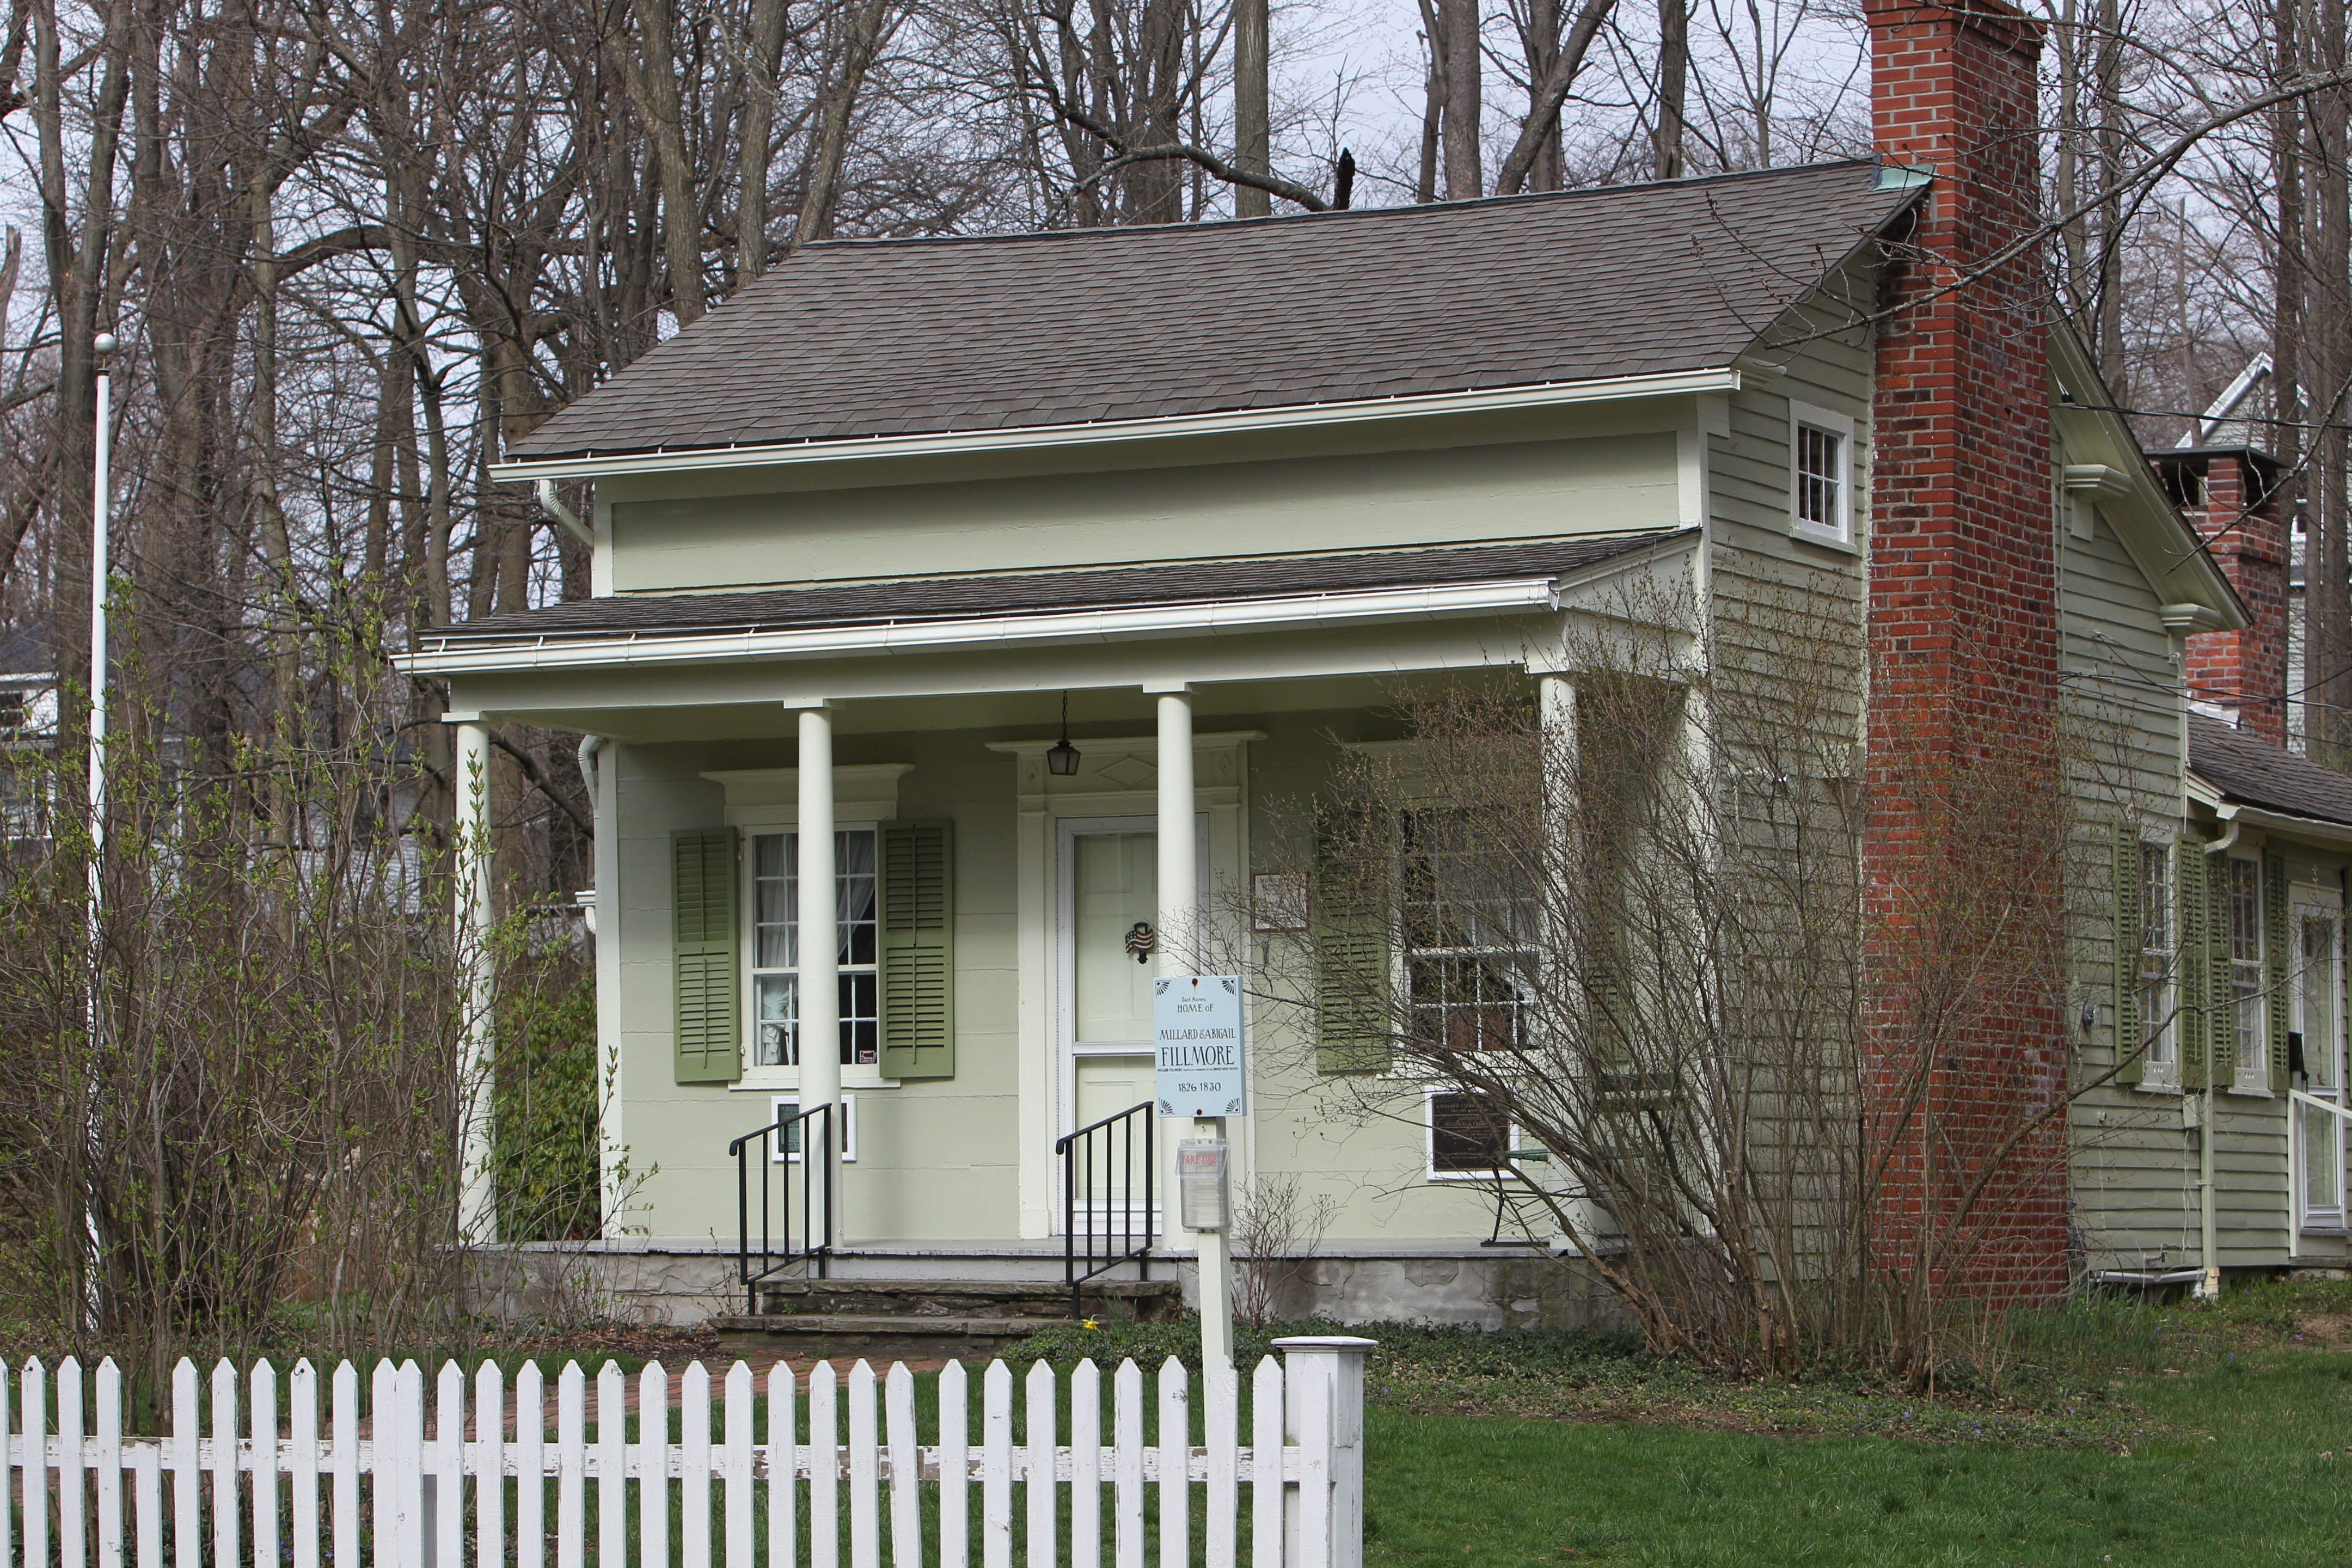 The Millard Fillmore House is located on Shearer Avenue in East Aurora. He and his wife, Abigail, lived there until 1830.